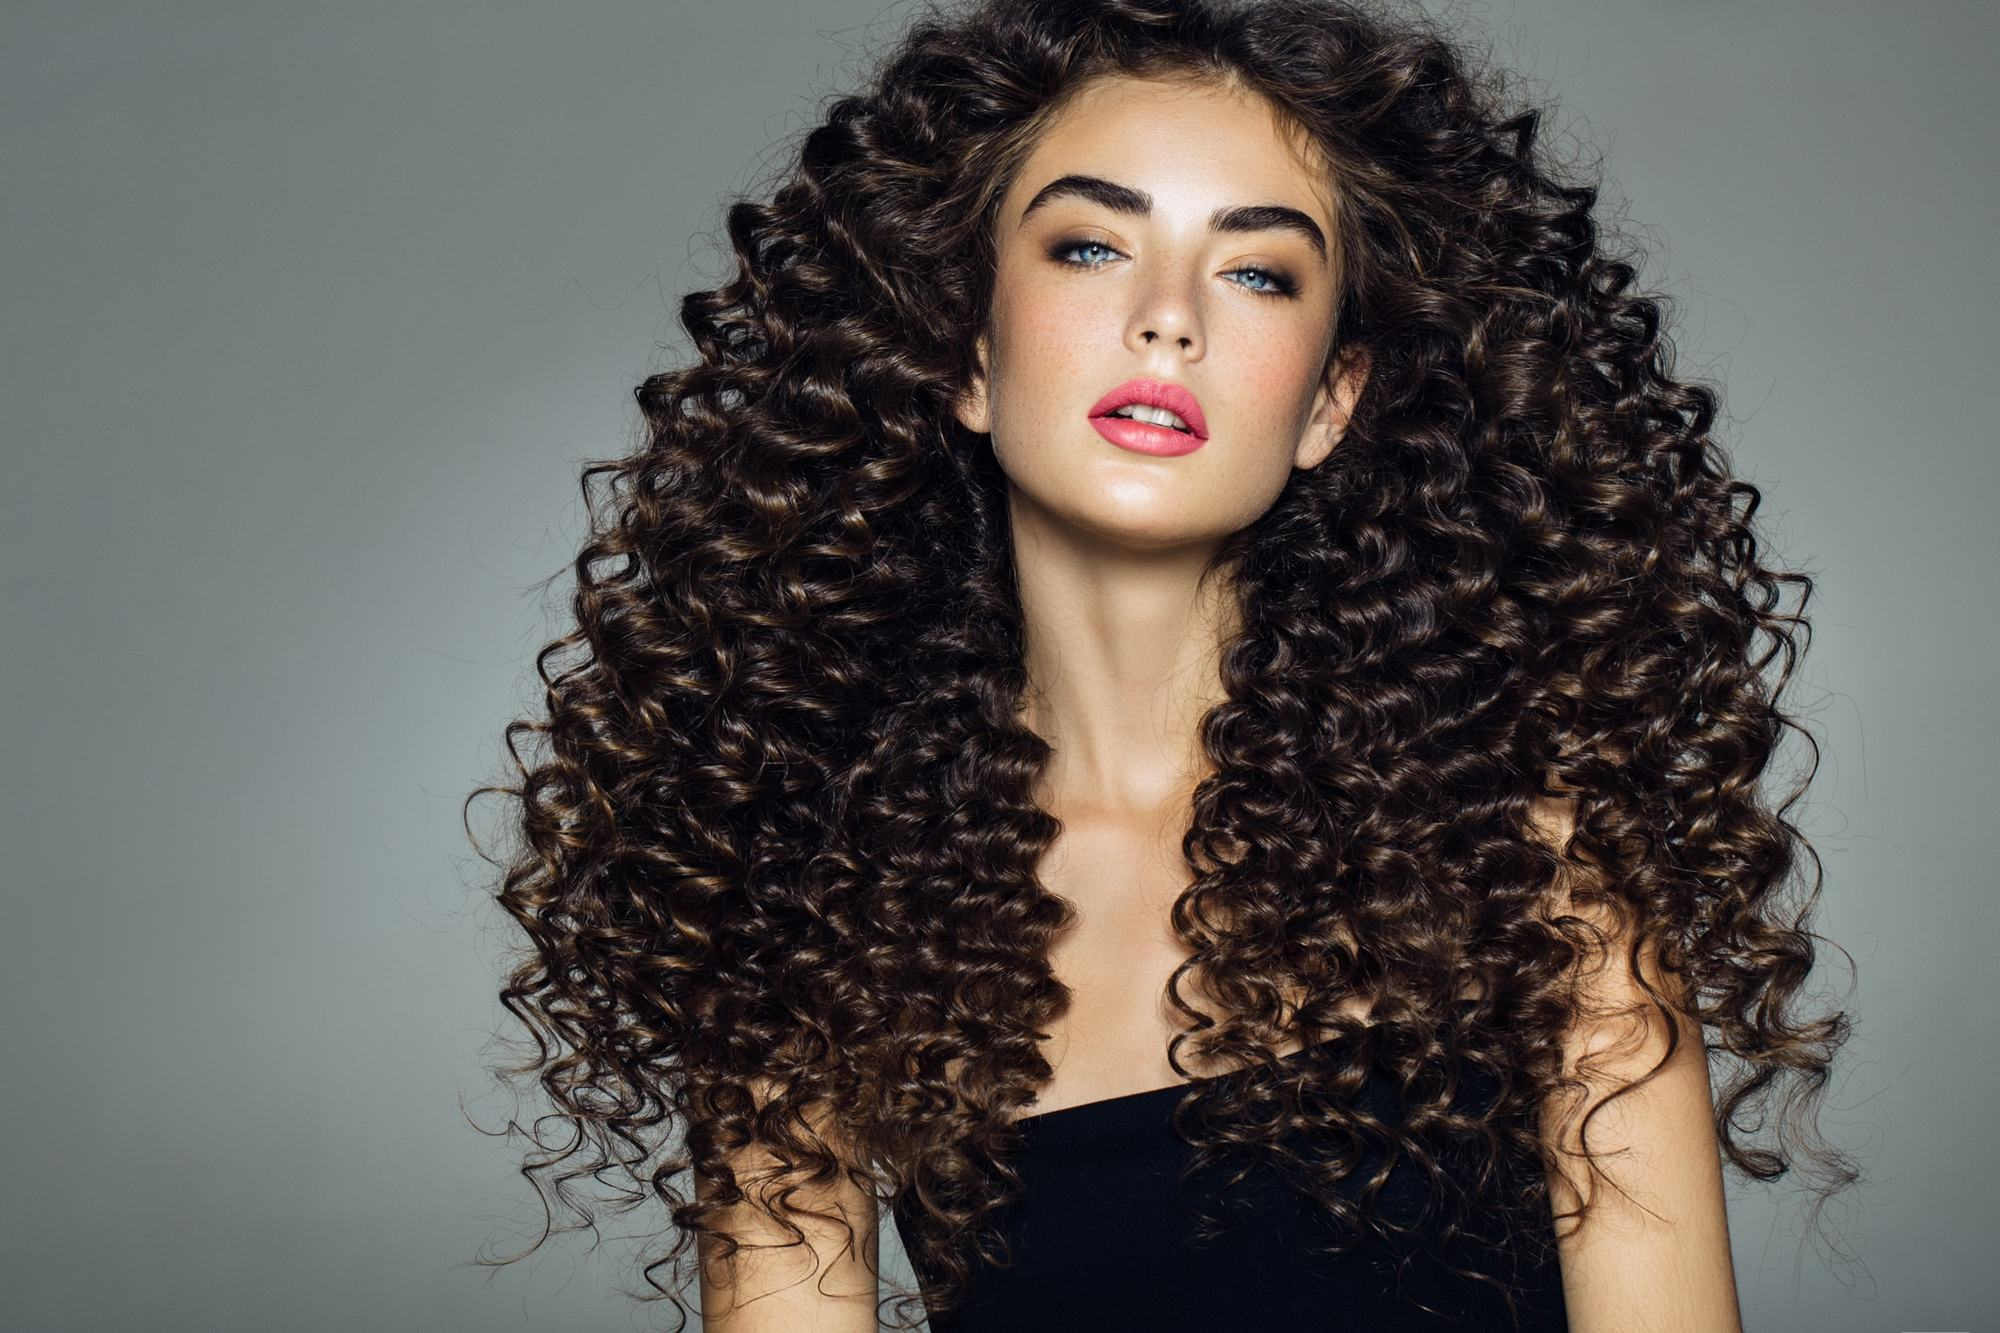 Hair Perm Styles: Curly Perm: 20 Curly Looks To Consider For Your First Perm